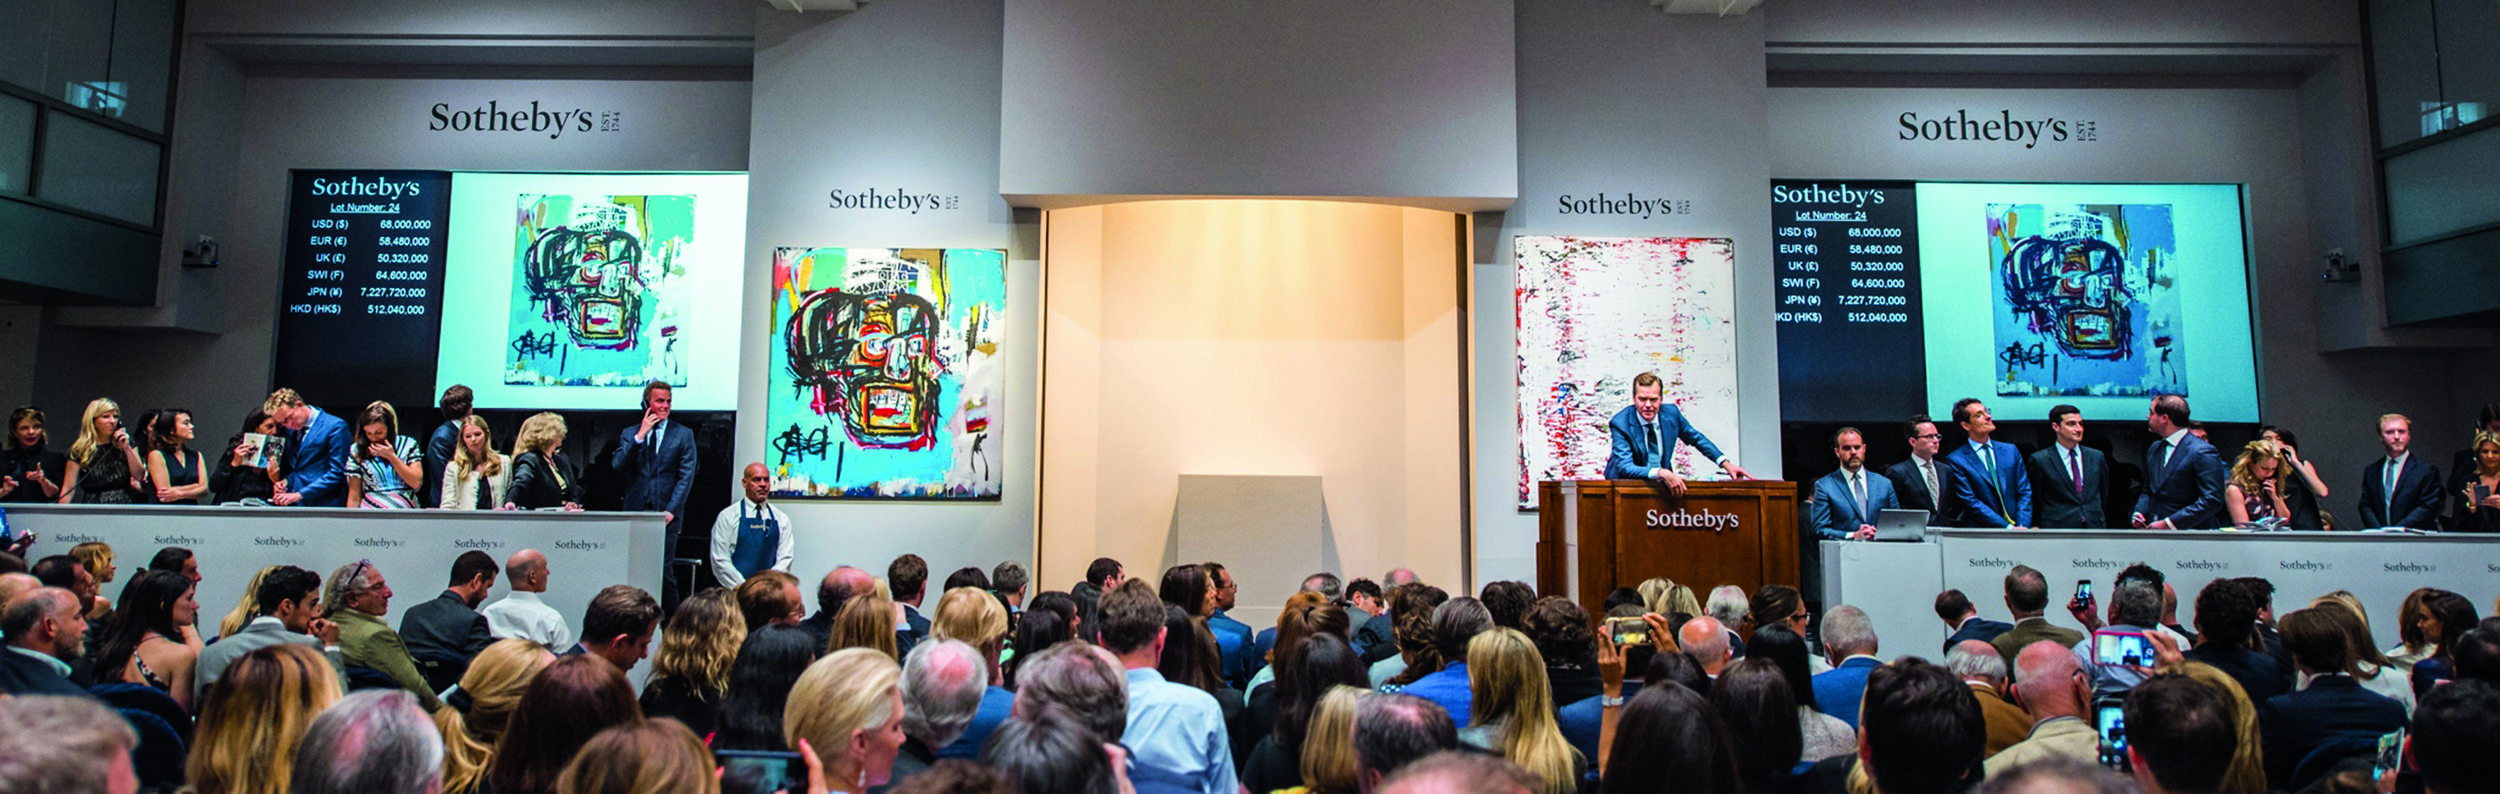 Sotheyb's New York, Contemporary Art Evening Auction, 18 May 2017. Courtesy of Sotheby's New York.